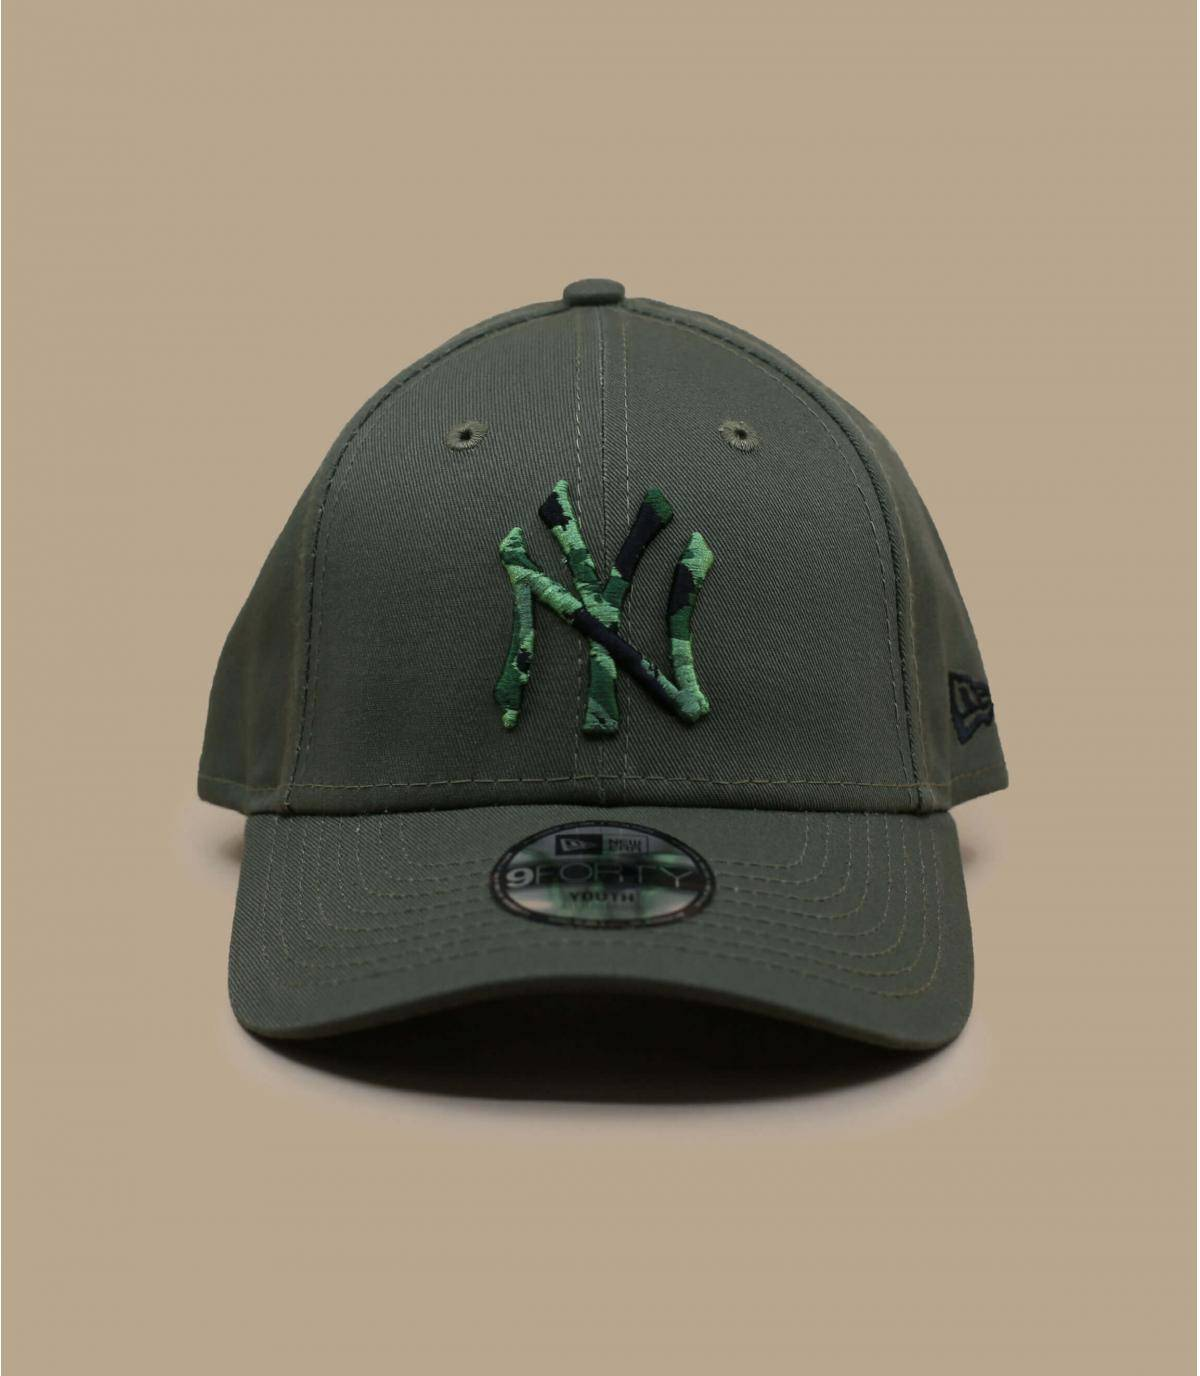 Details Kids Camo Infill NY olive - afbeeling 2